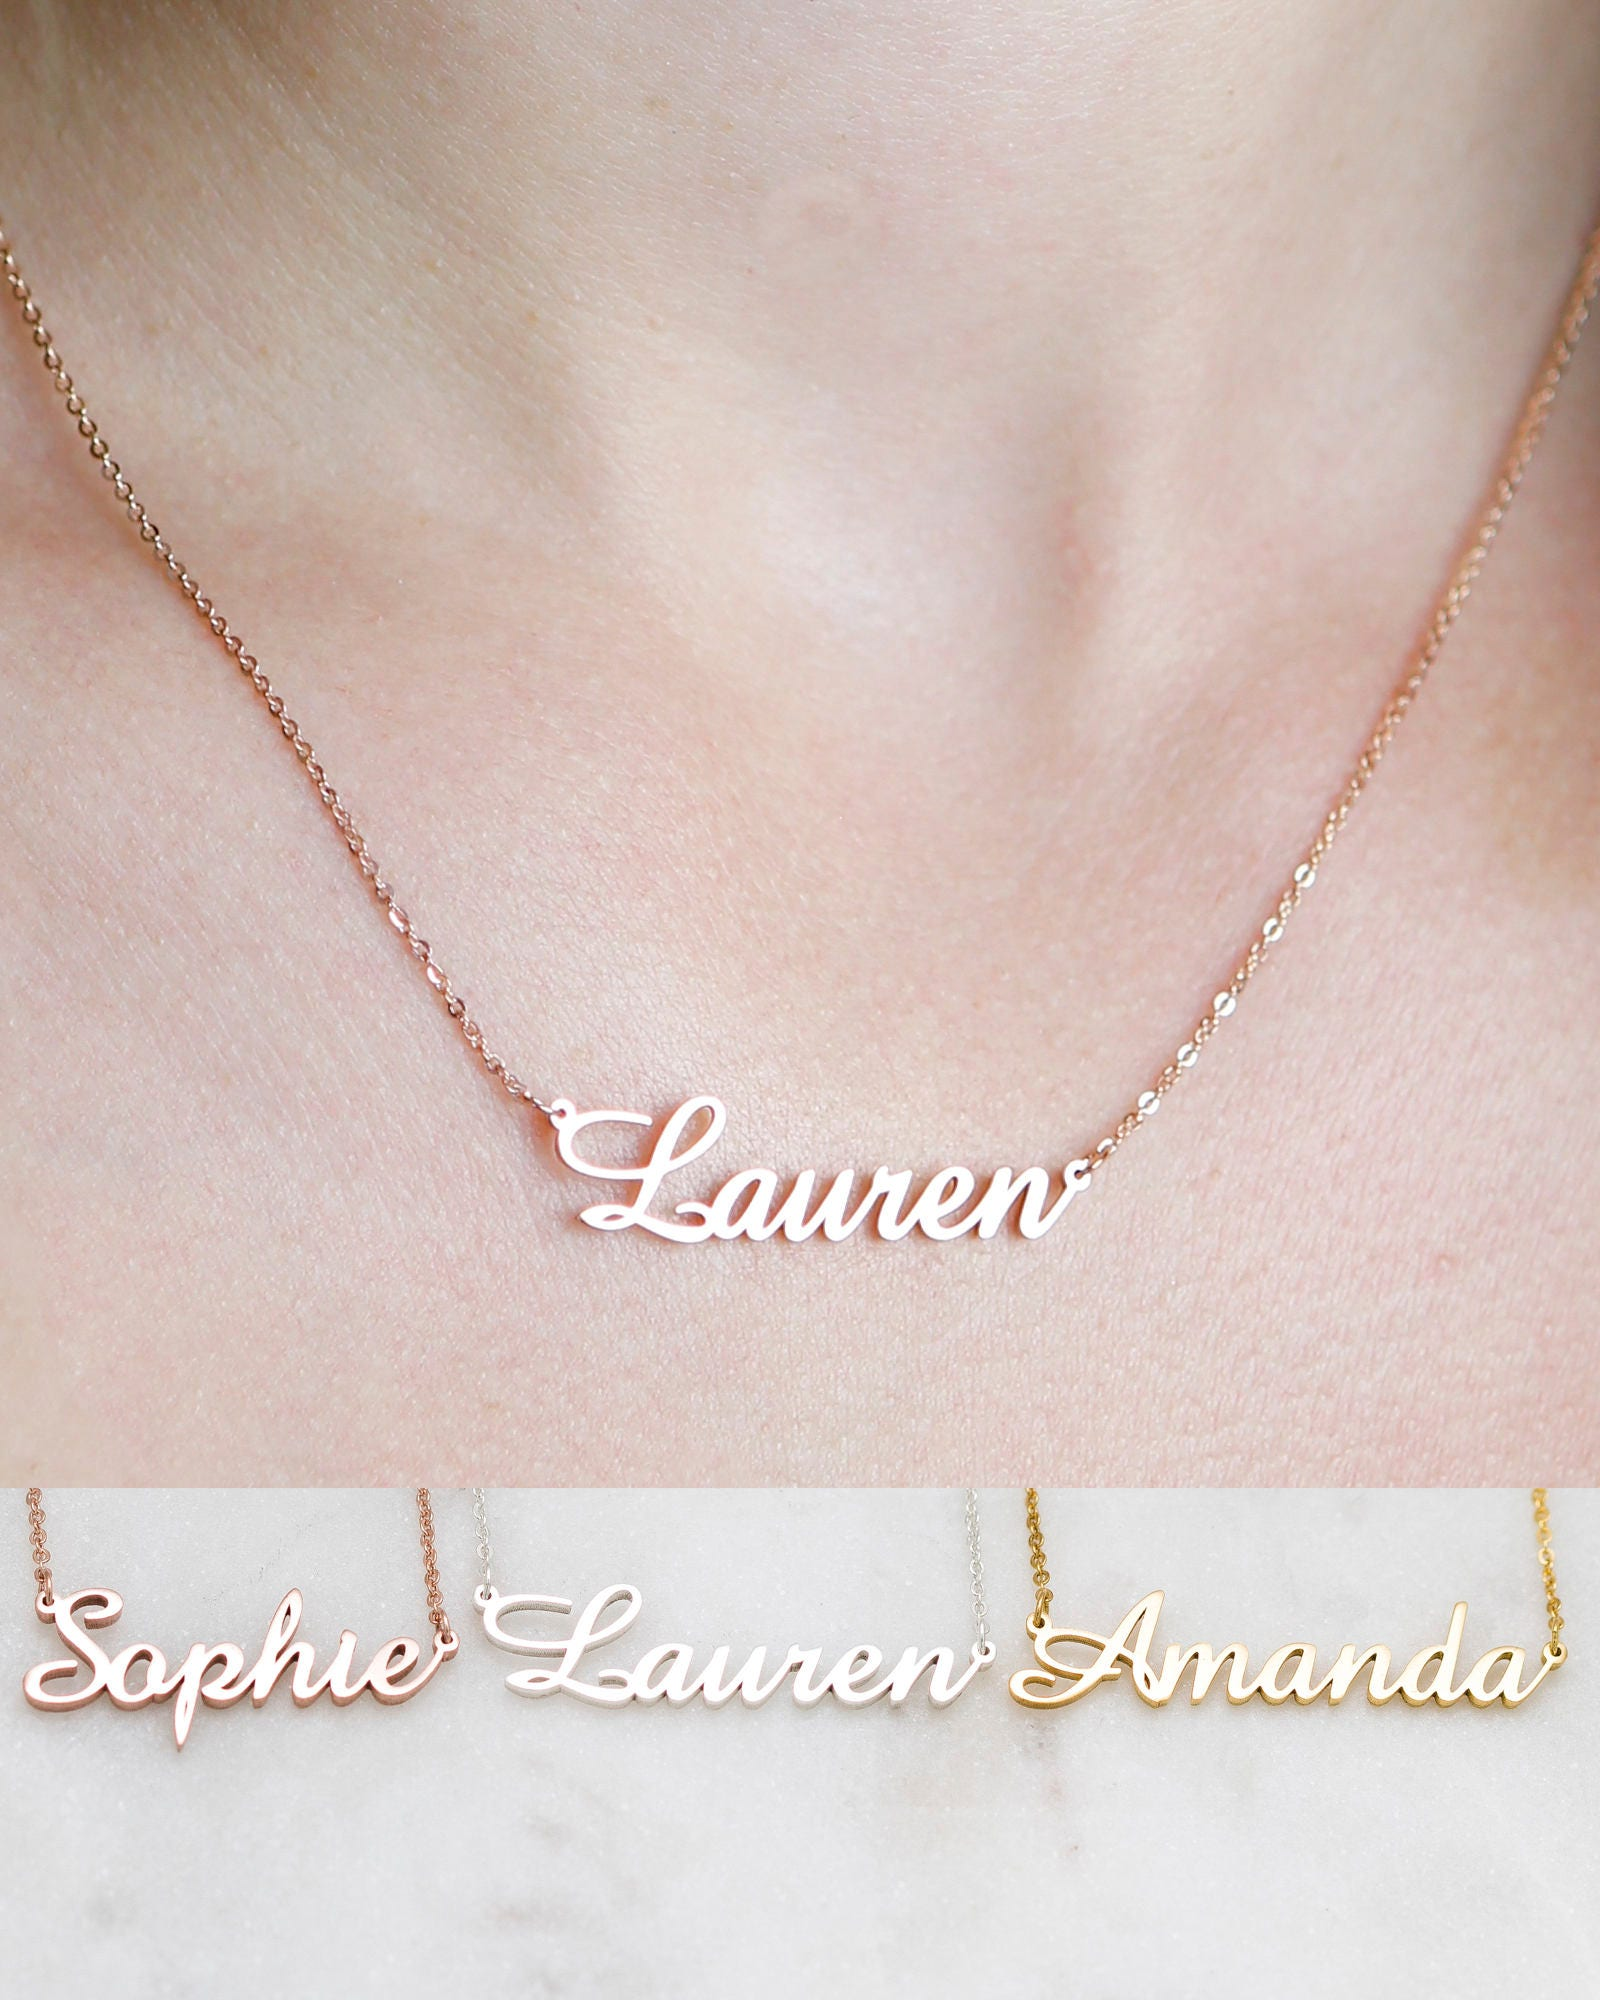 Custom Name Necklace Personalized Name Necklace KY050615 Birthday Gifts Personalized Gift Dainty Name Necklace